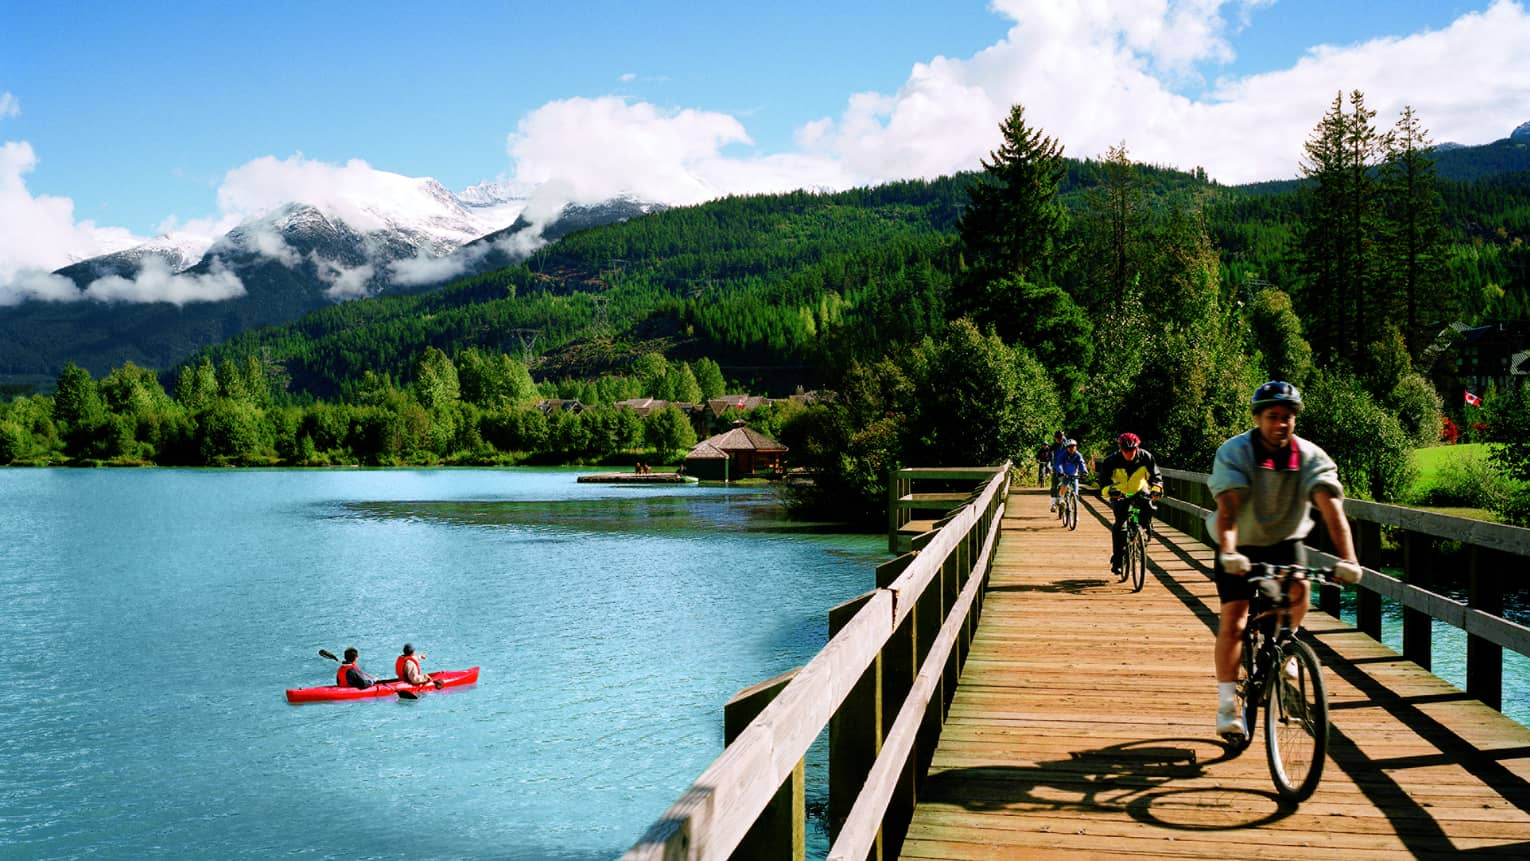 Two people in red kayak in river below green mountain, cyclists ride bikes across wood bridge